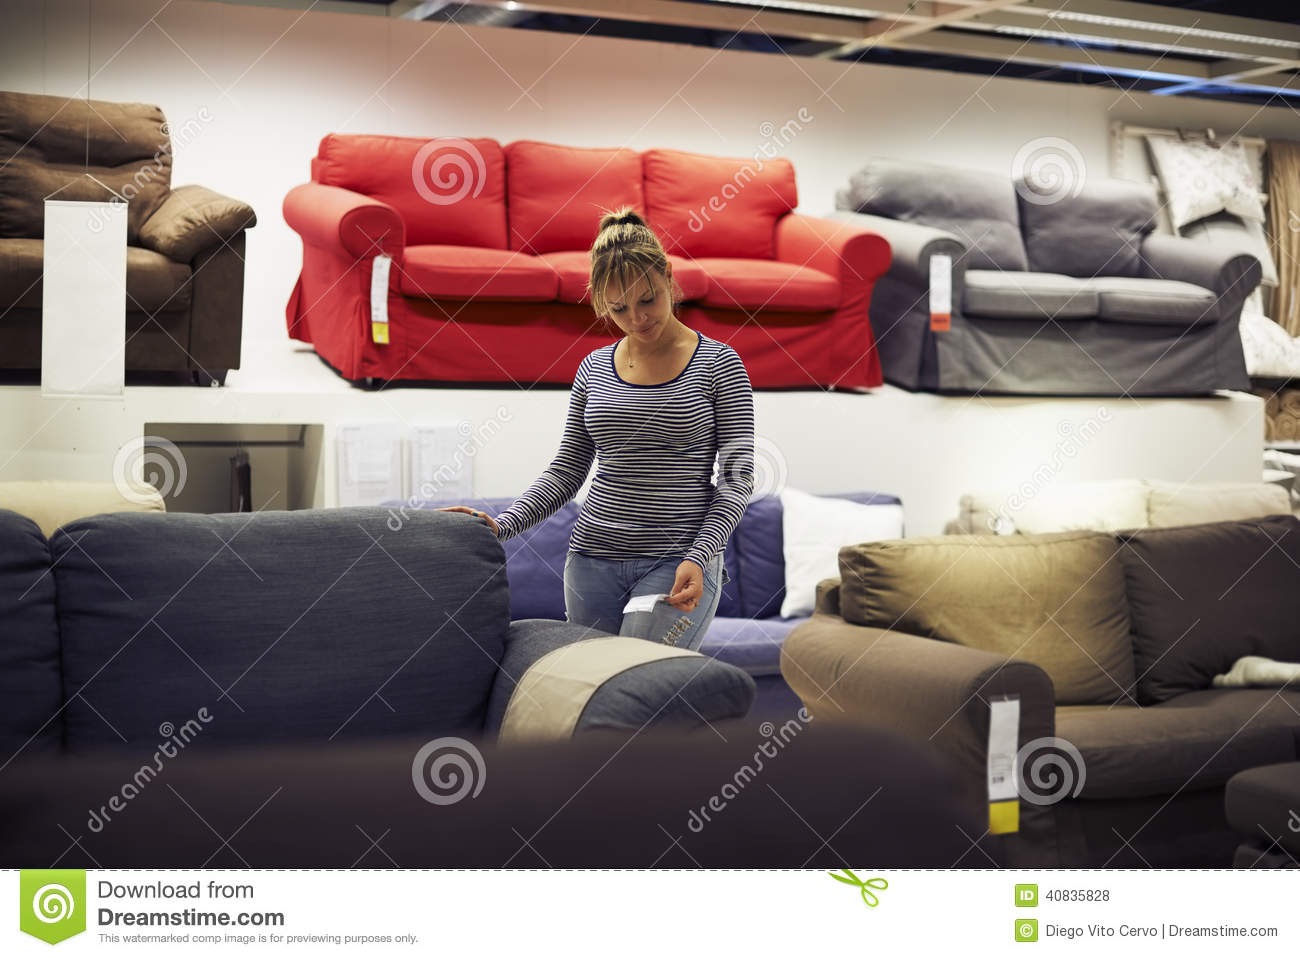 Woman Shopping For Furniture And Home Decor Stock Photo